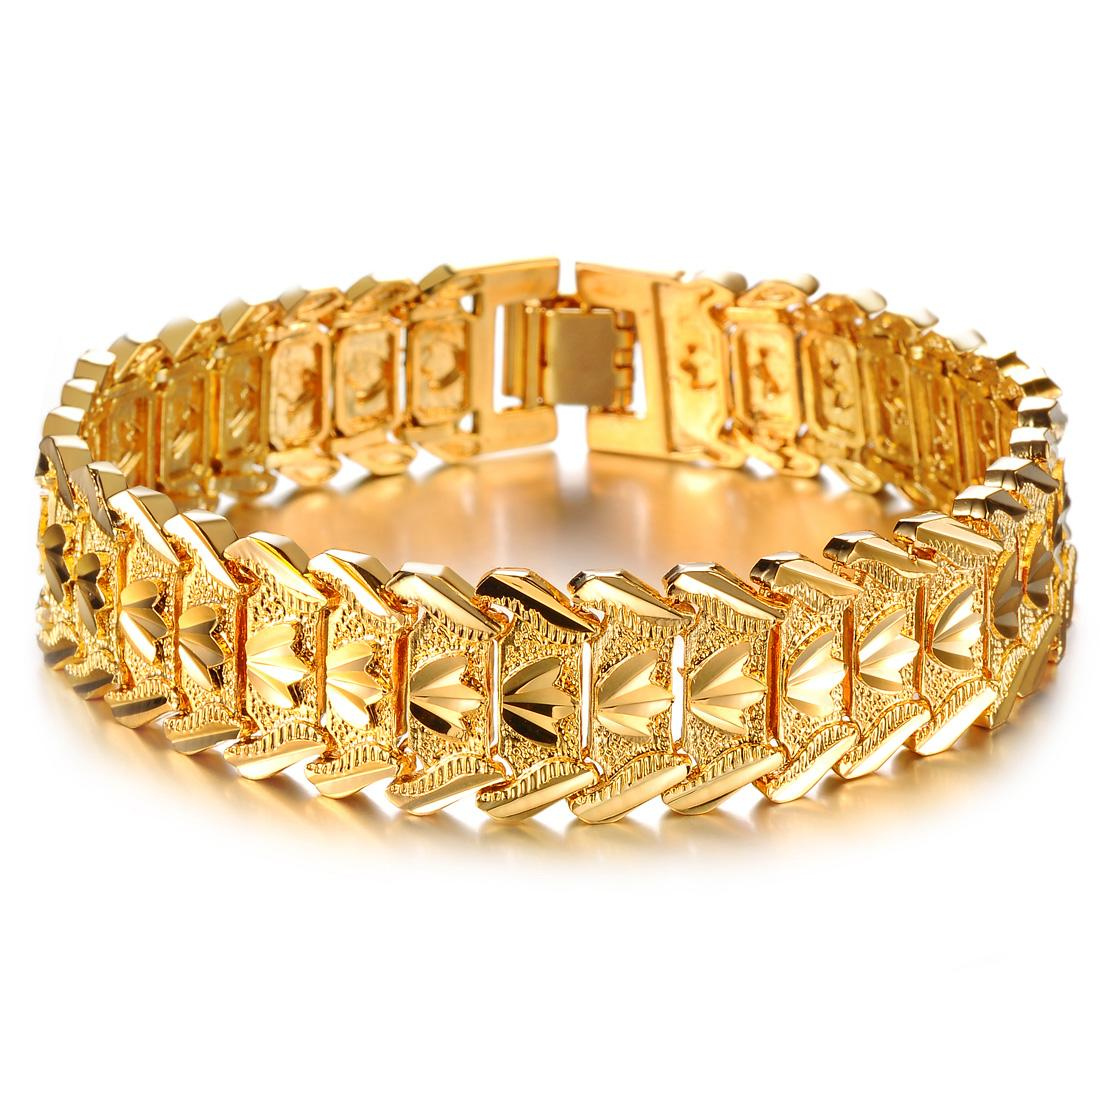 2018 Wholesale Fashion Accessories Male Gold Bracelet Personalized ...